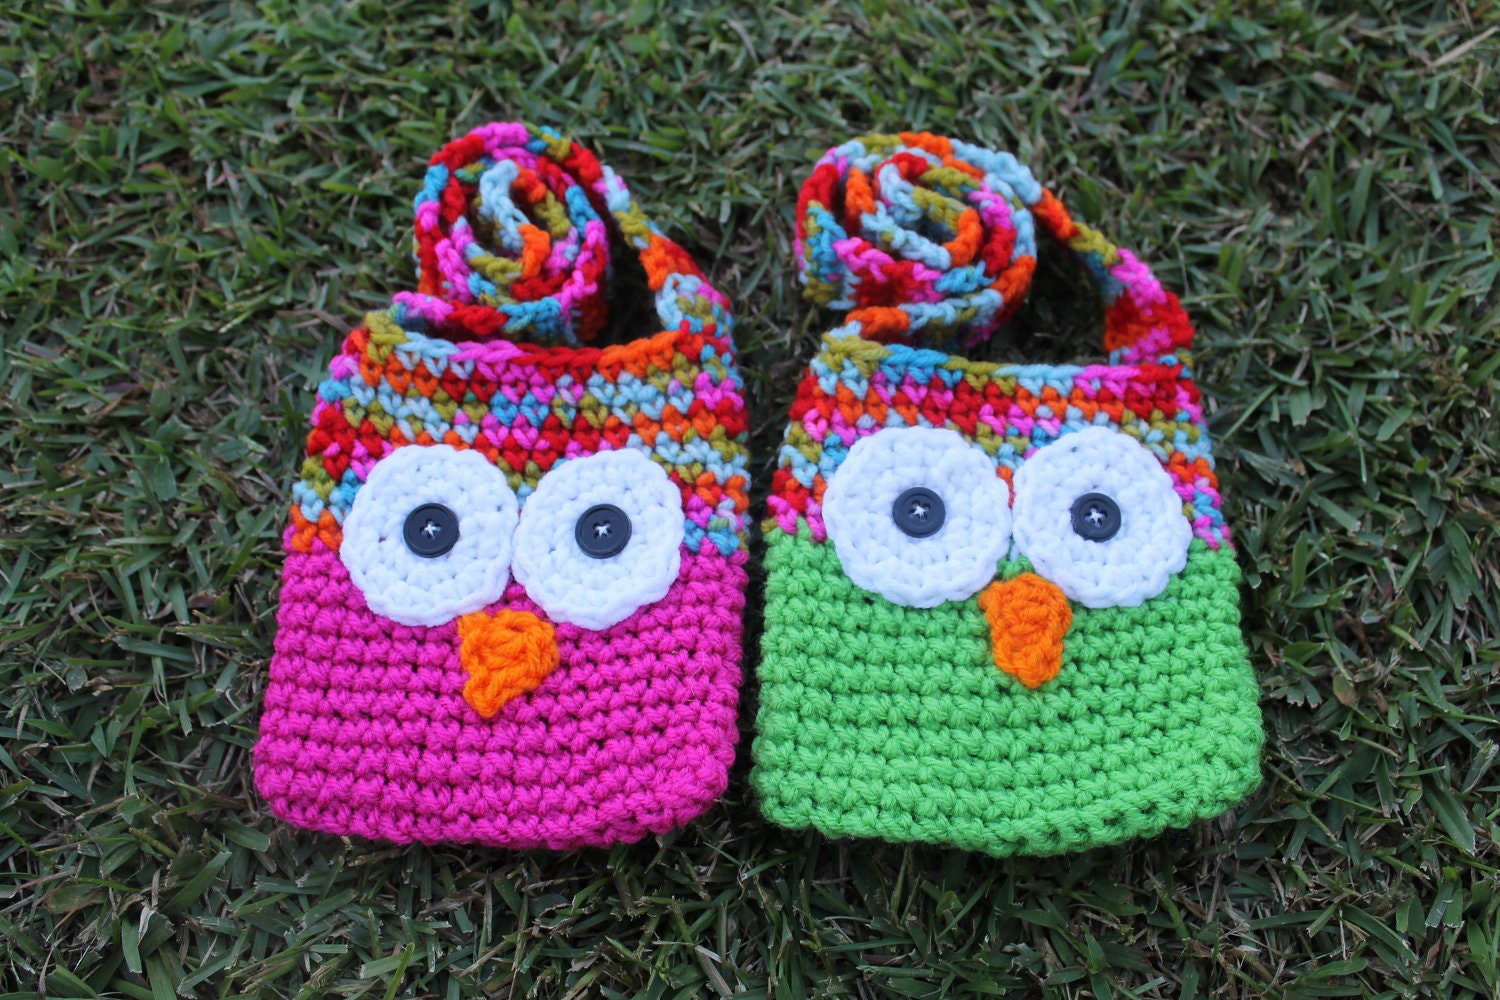 Crochet Patterns For Kids Bags : PDF Pattern for Kids Crochet Owl Bags with Strap. by KraftyShack